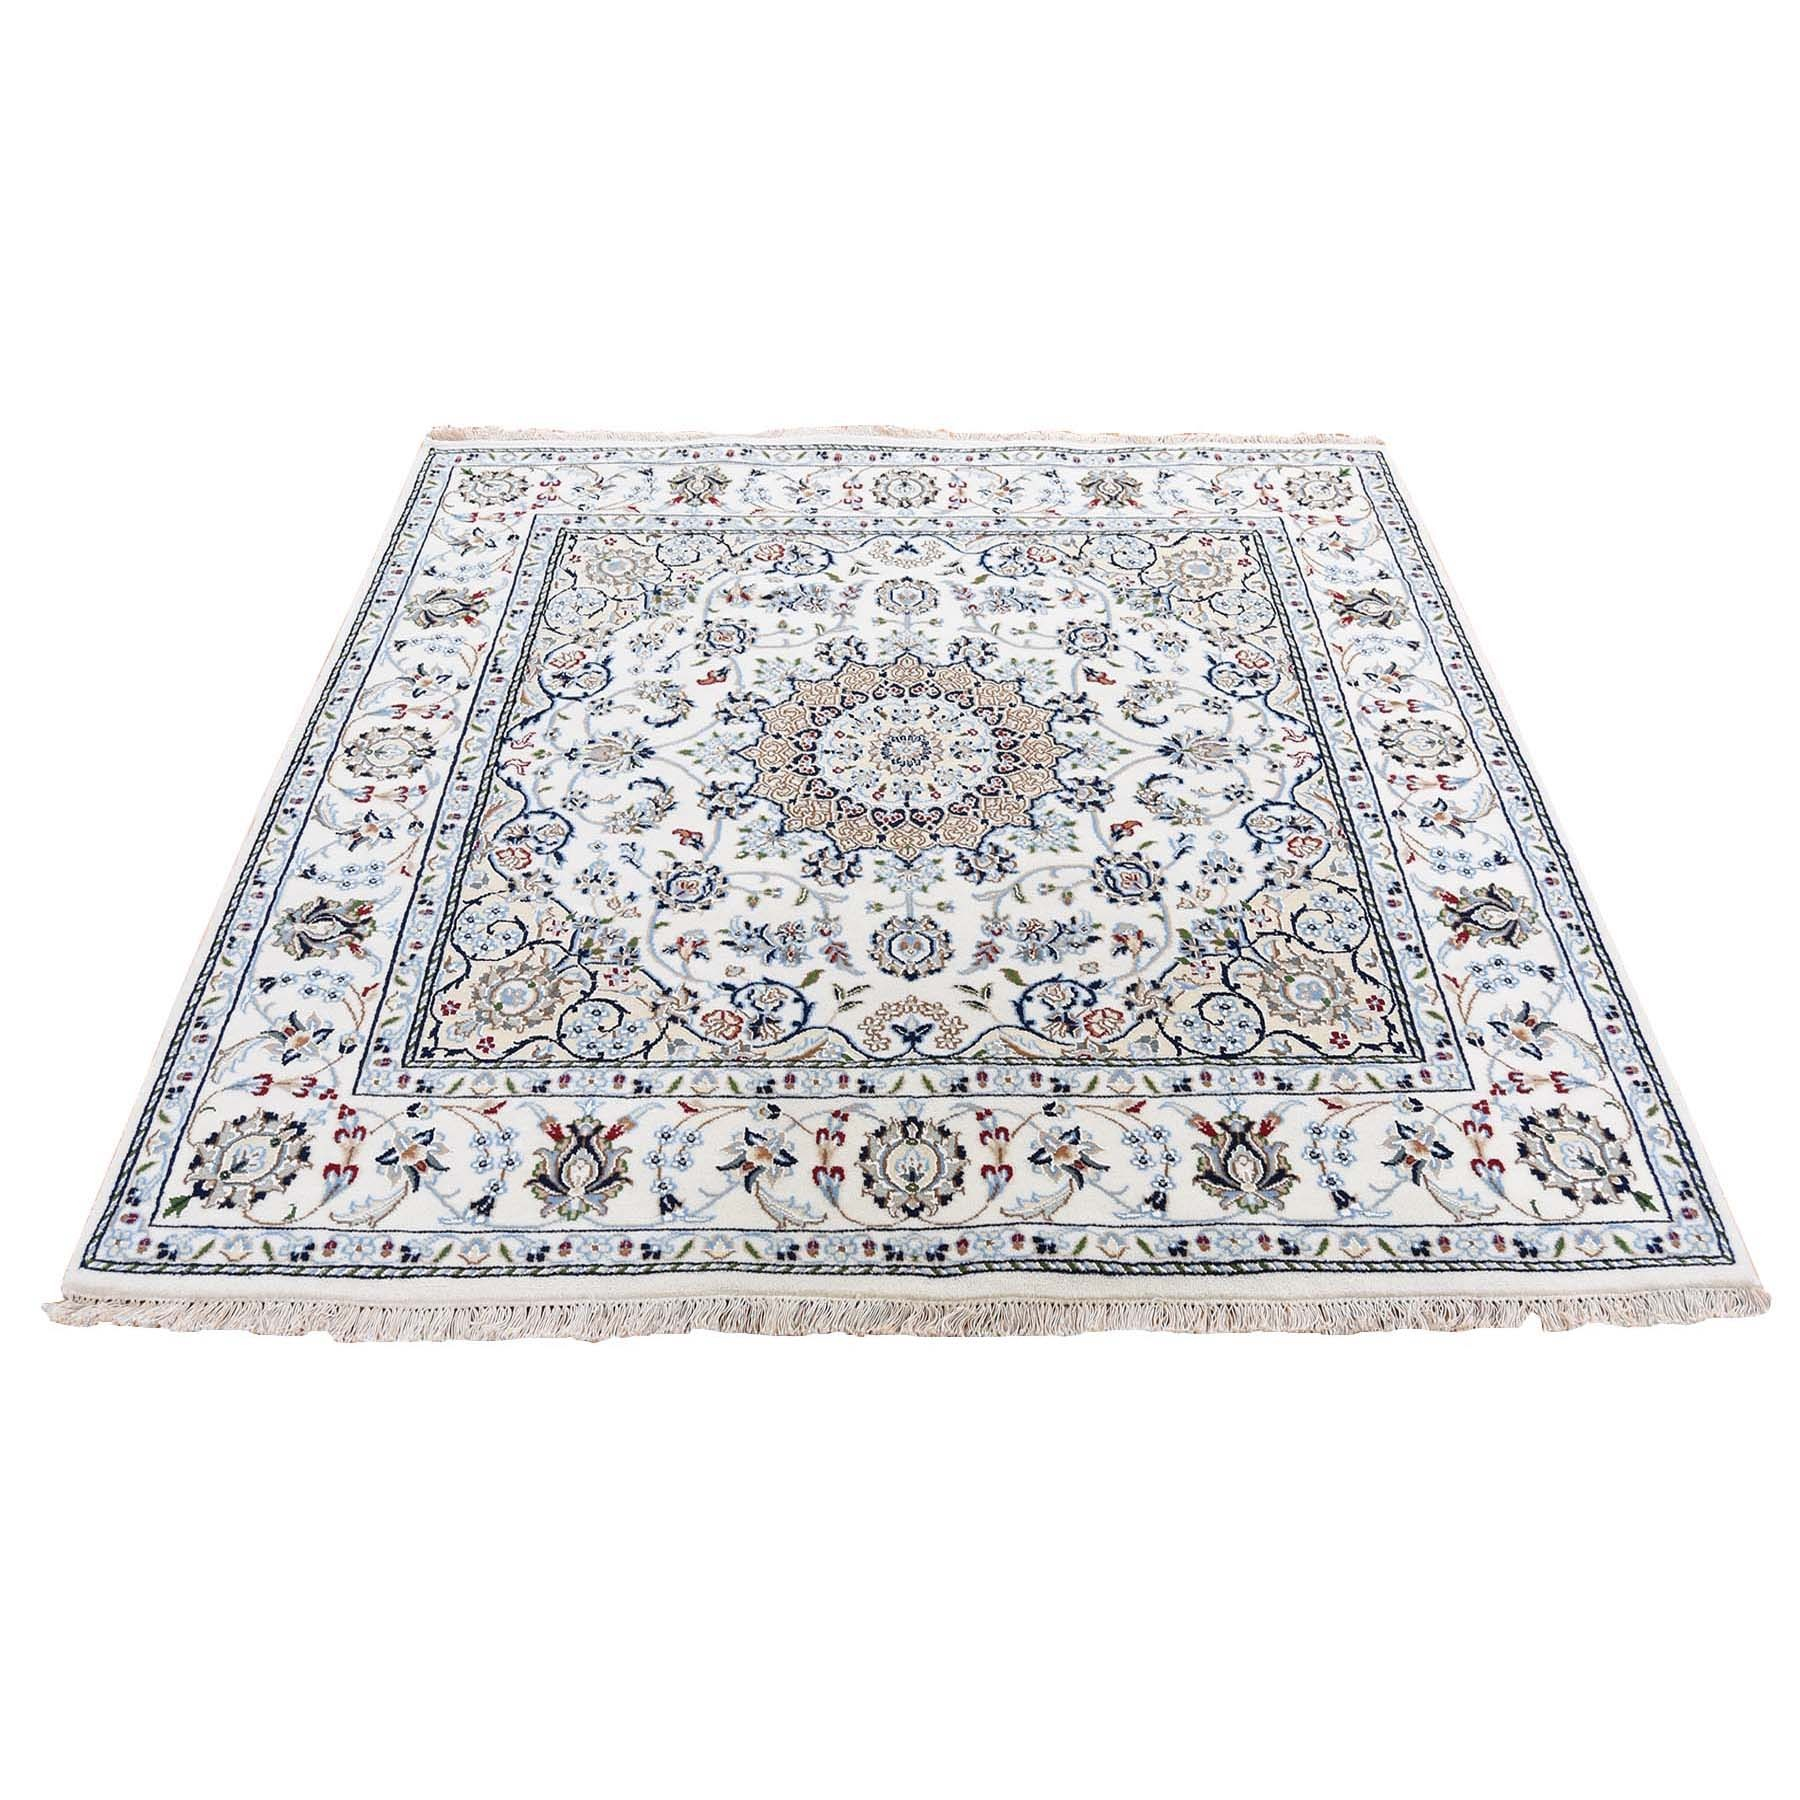 Pirniakan Collection Hand Knotted Ivory Rug No: 1119996